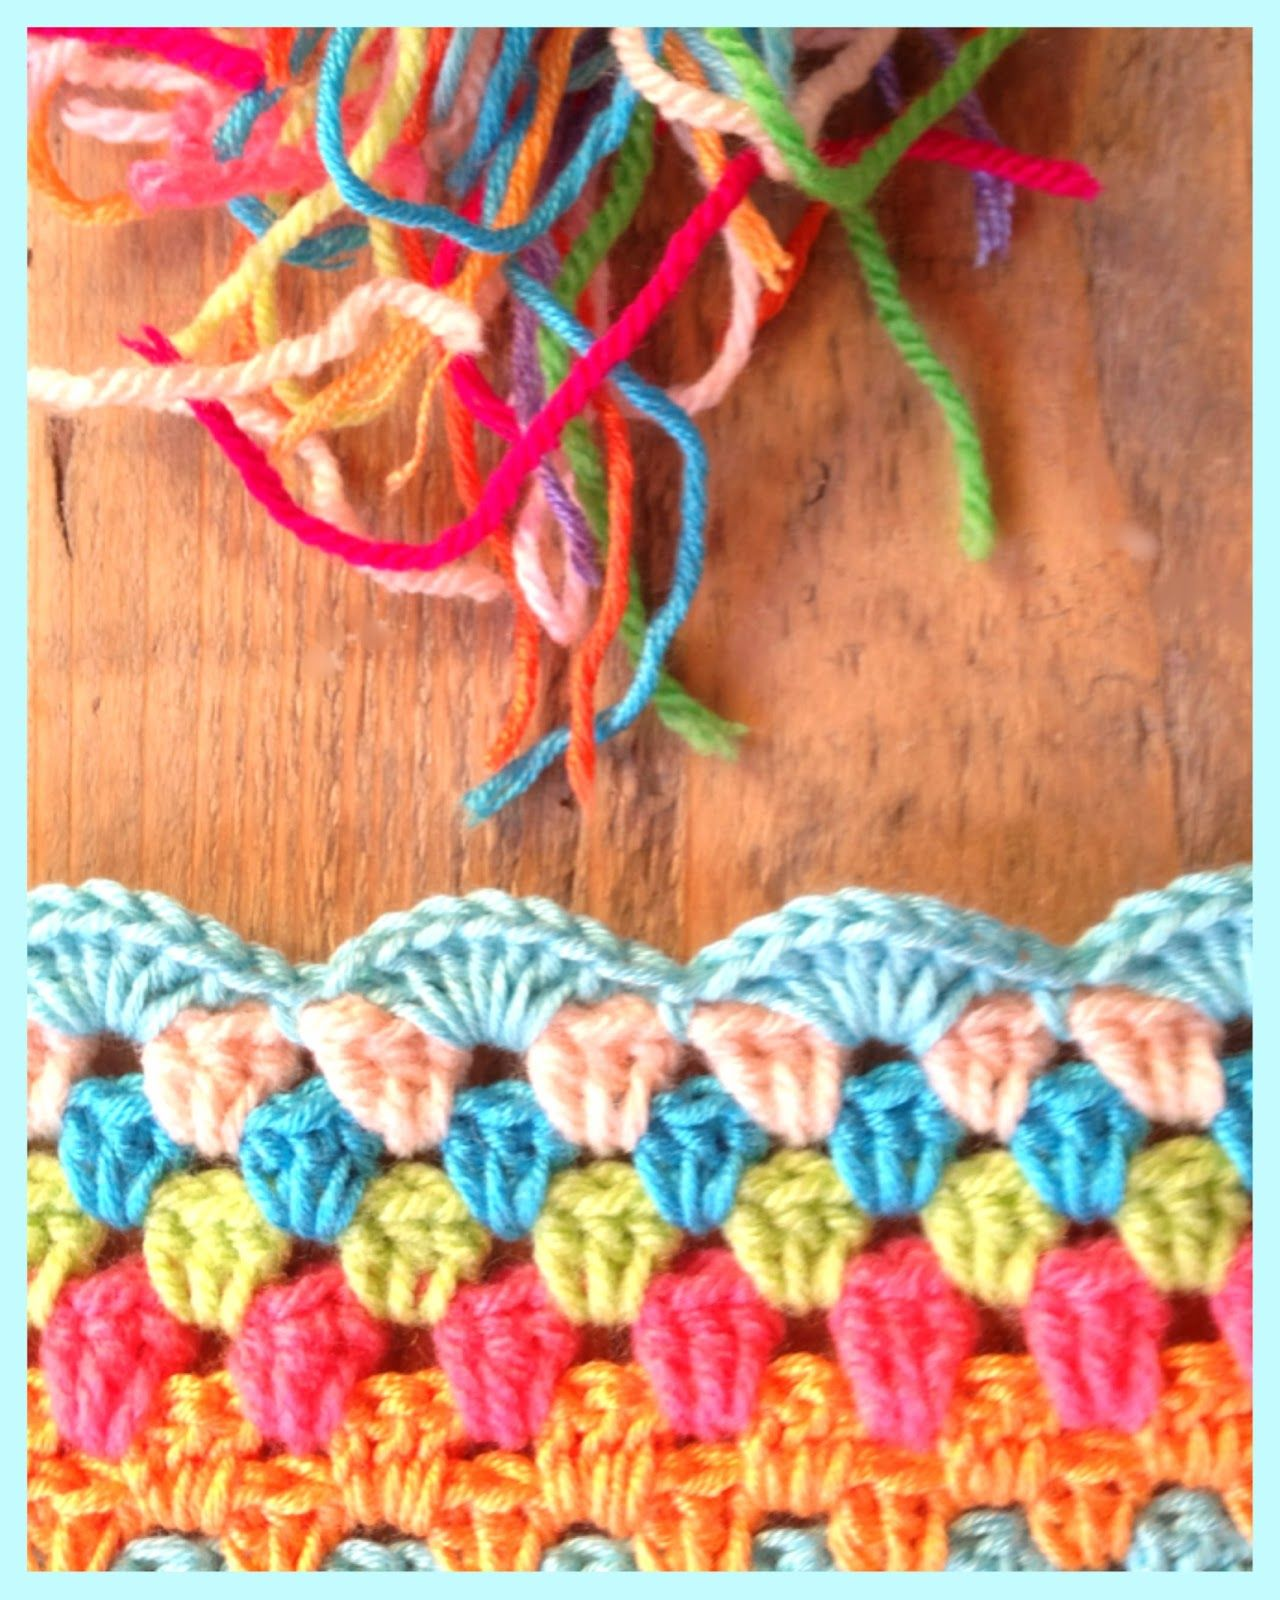 Pin By Heather Dearman On Crochet Crochet Knitting Crochet Patterns